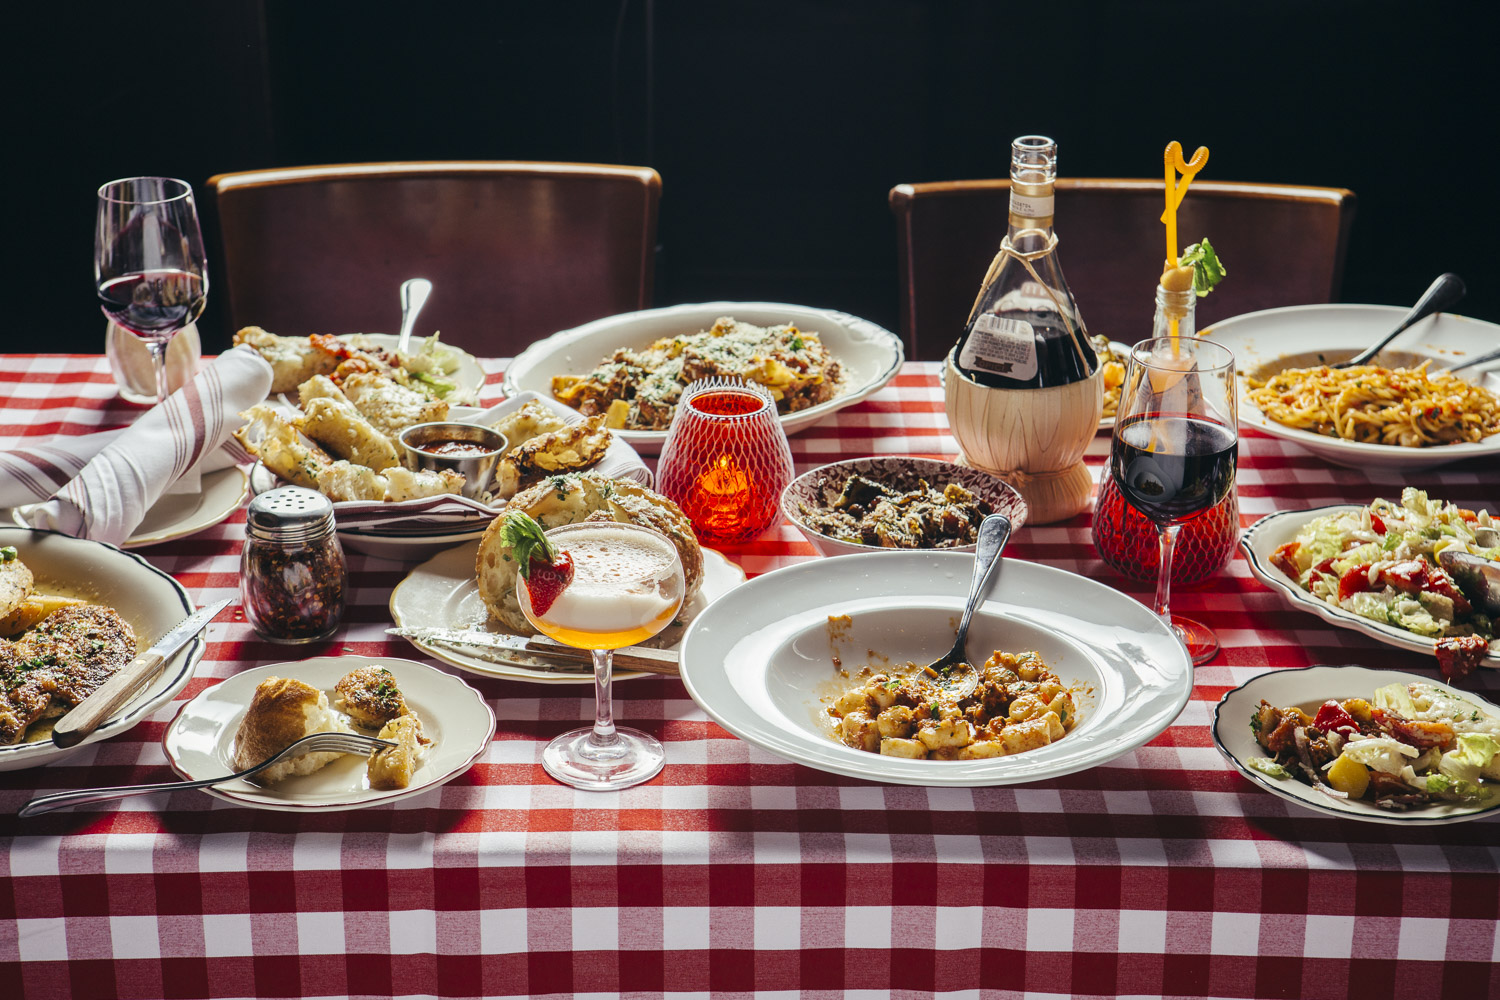 A spread of Italian dishes on a red-checkered tablecloth